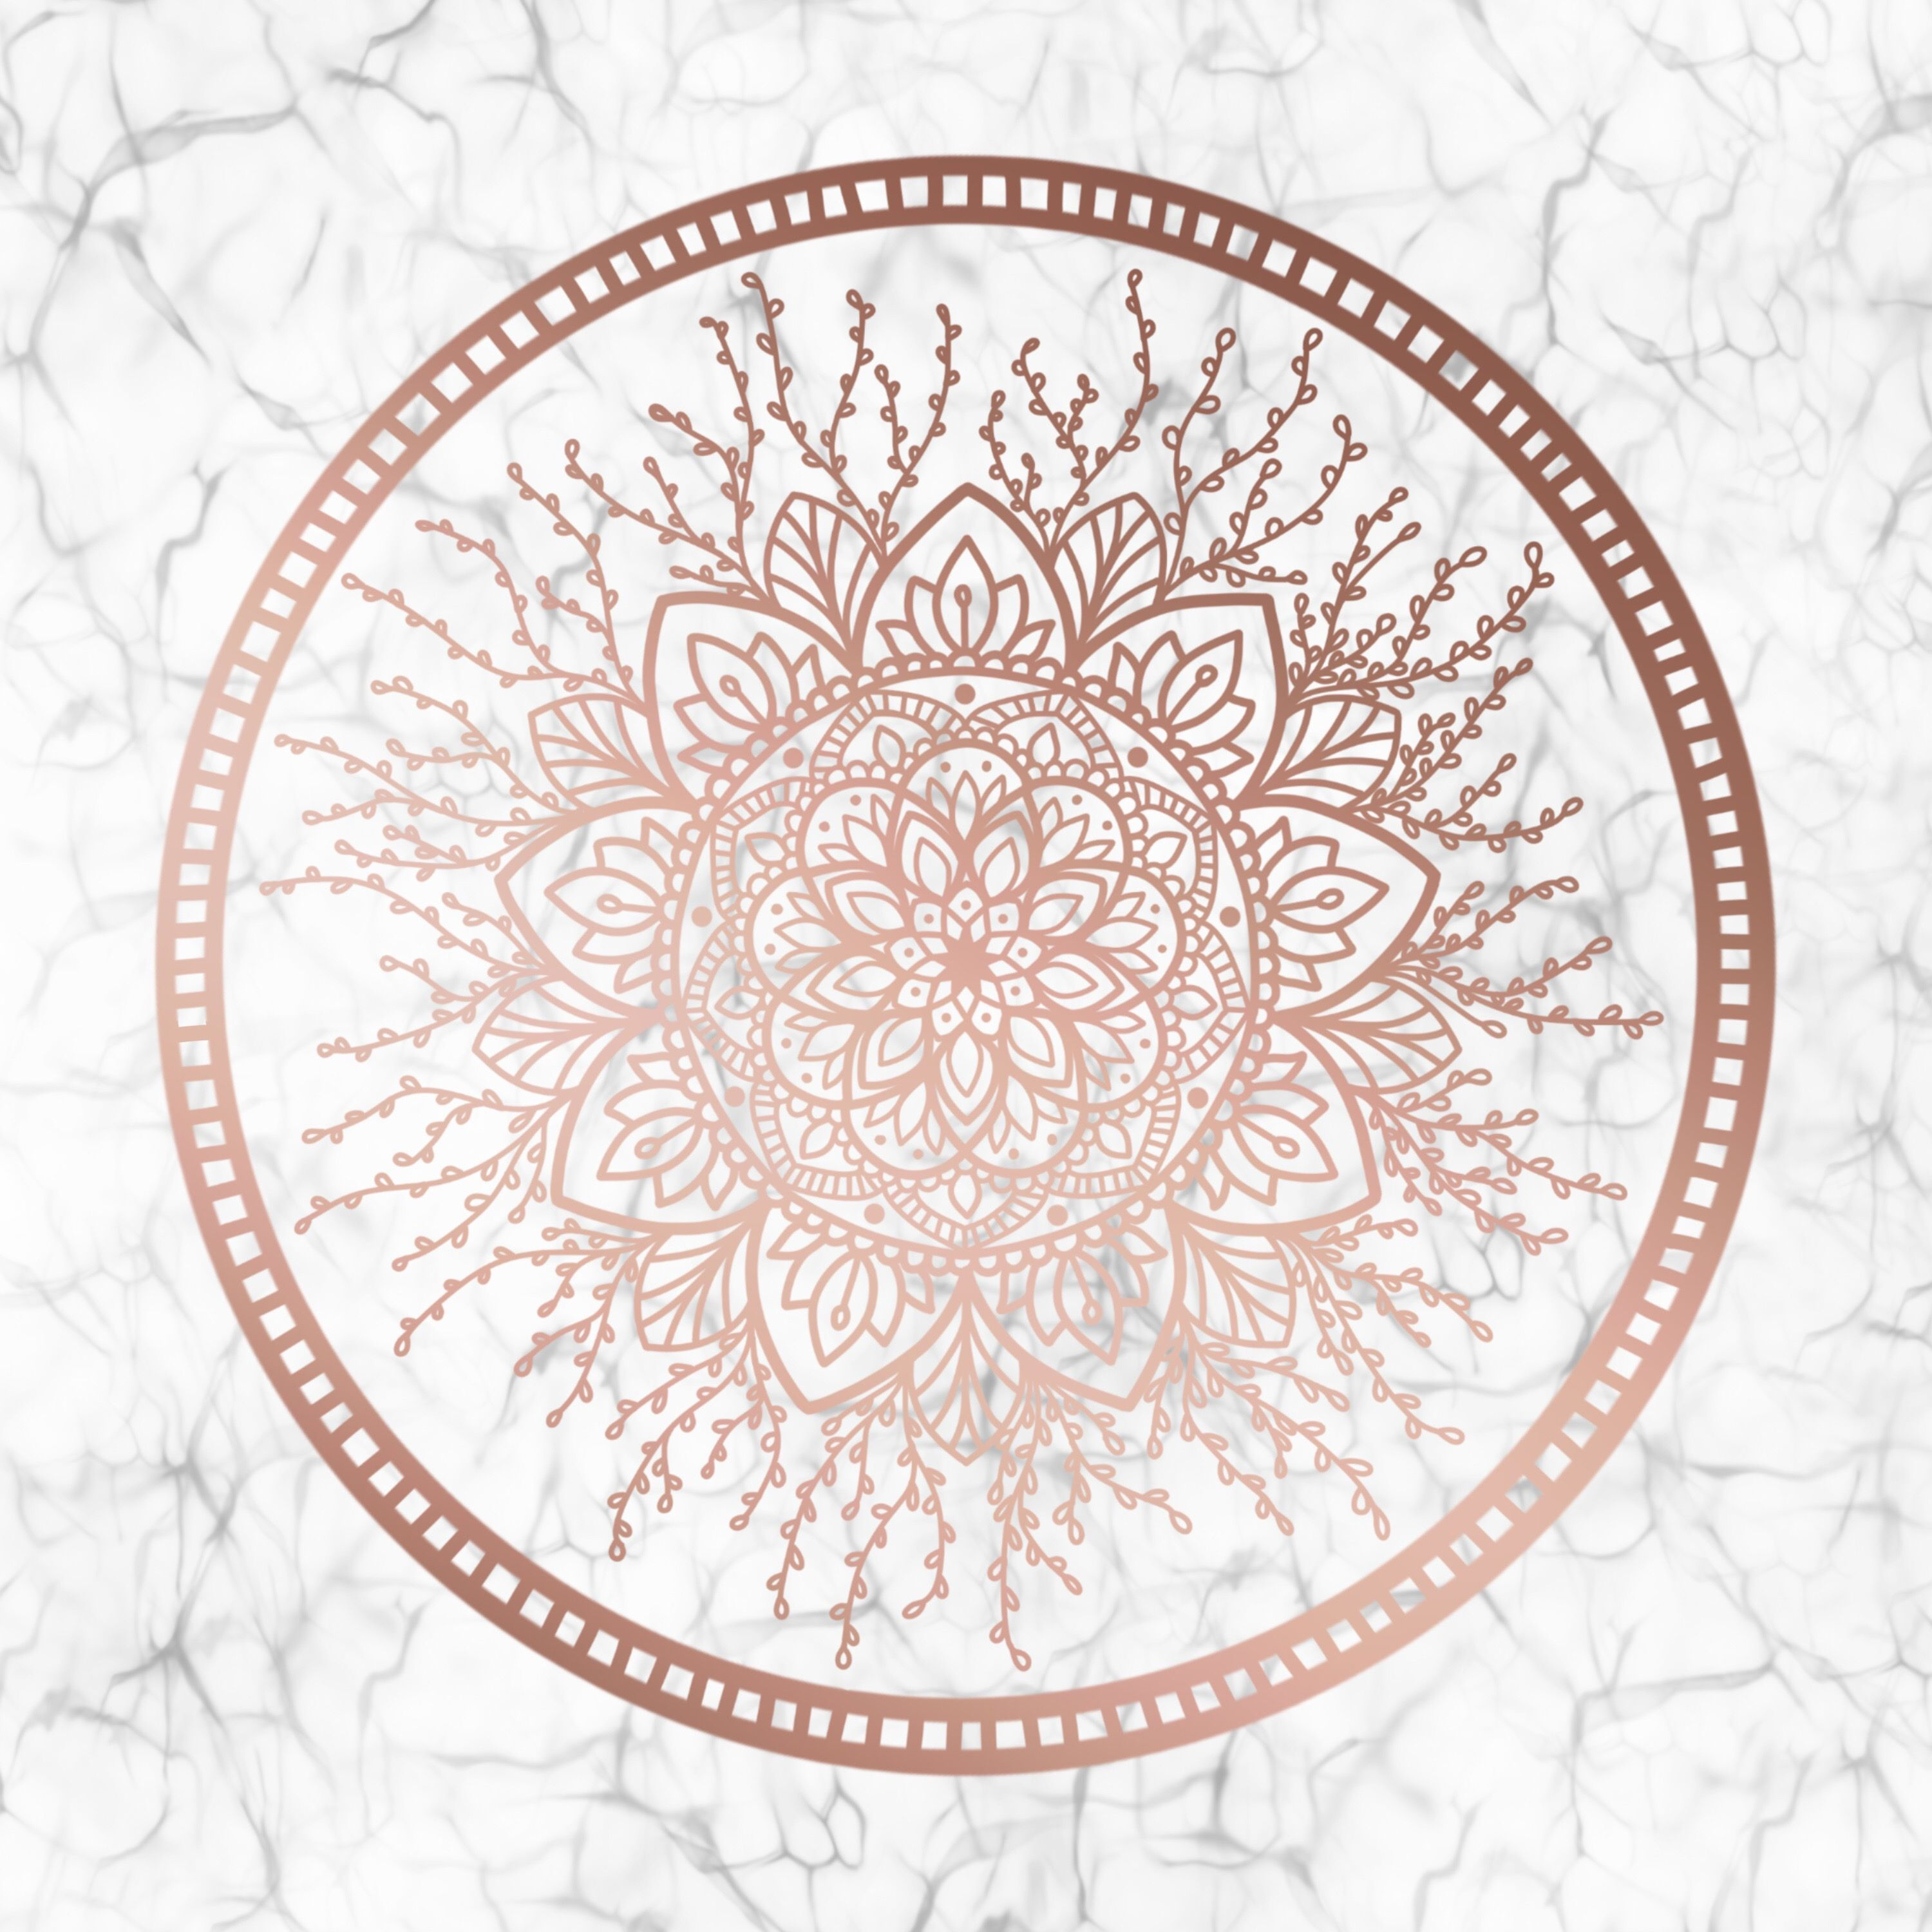 Rose Gold Nature Mandala on Marble by Eliza Bentley